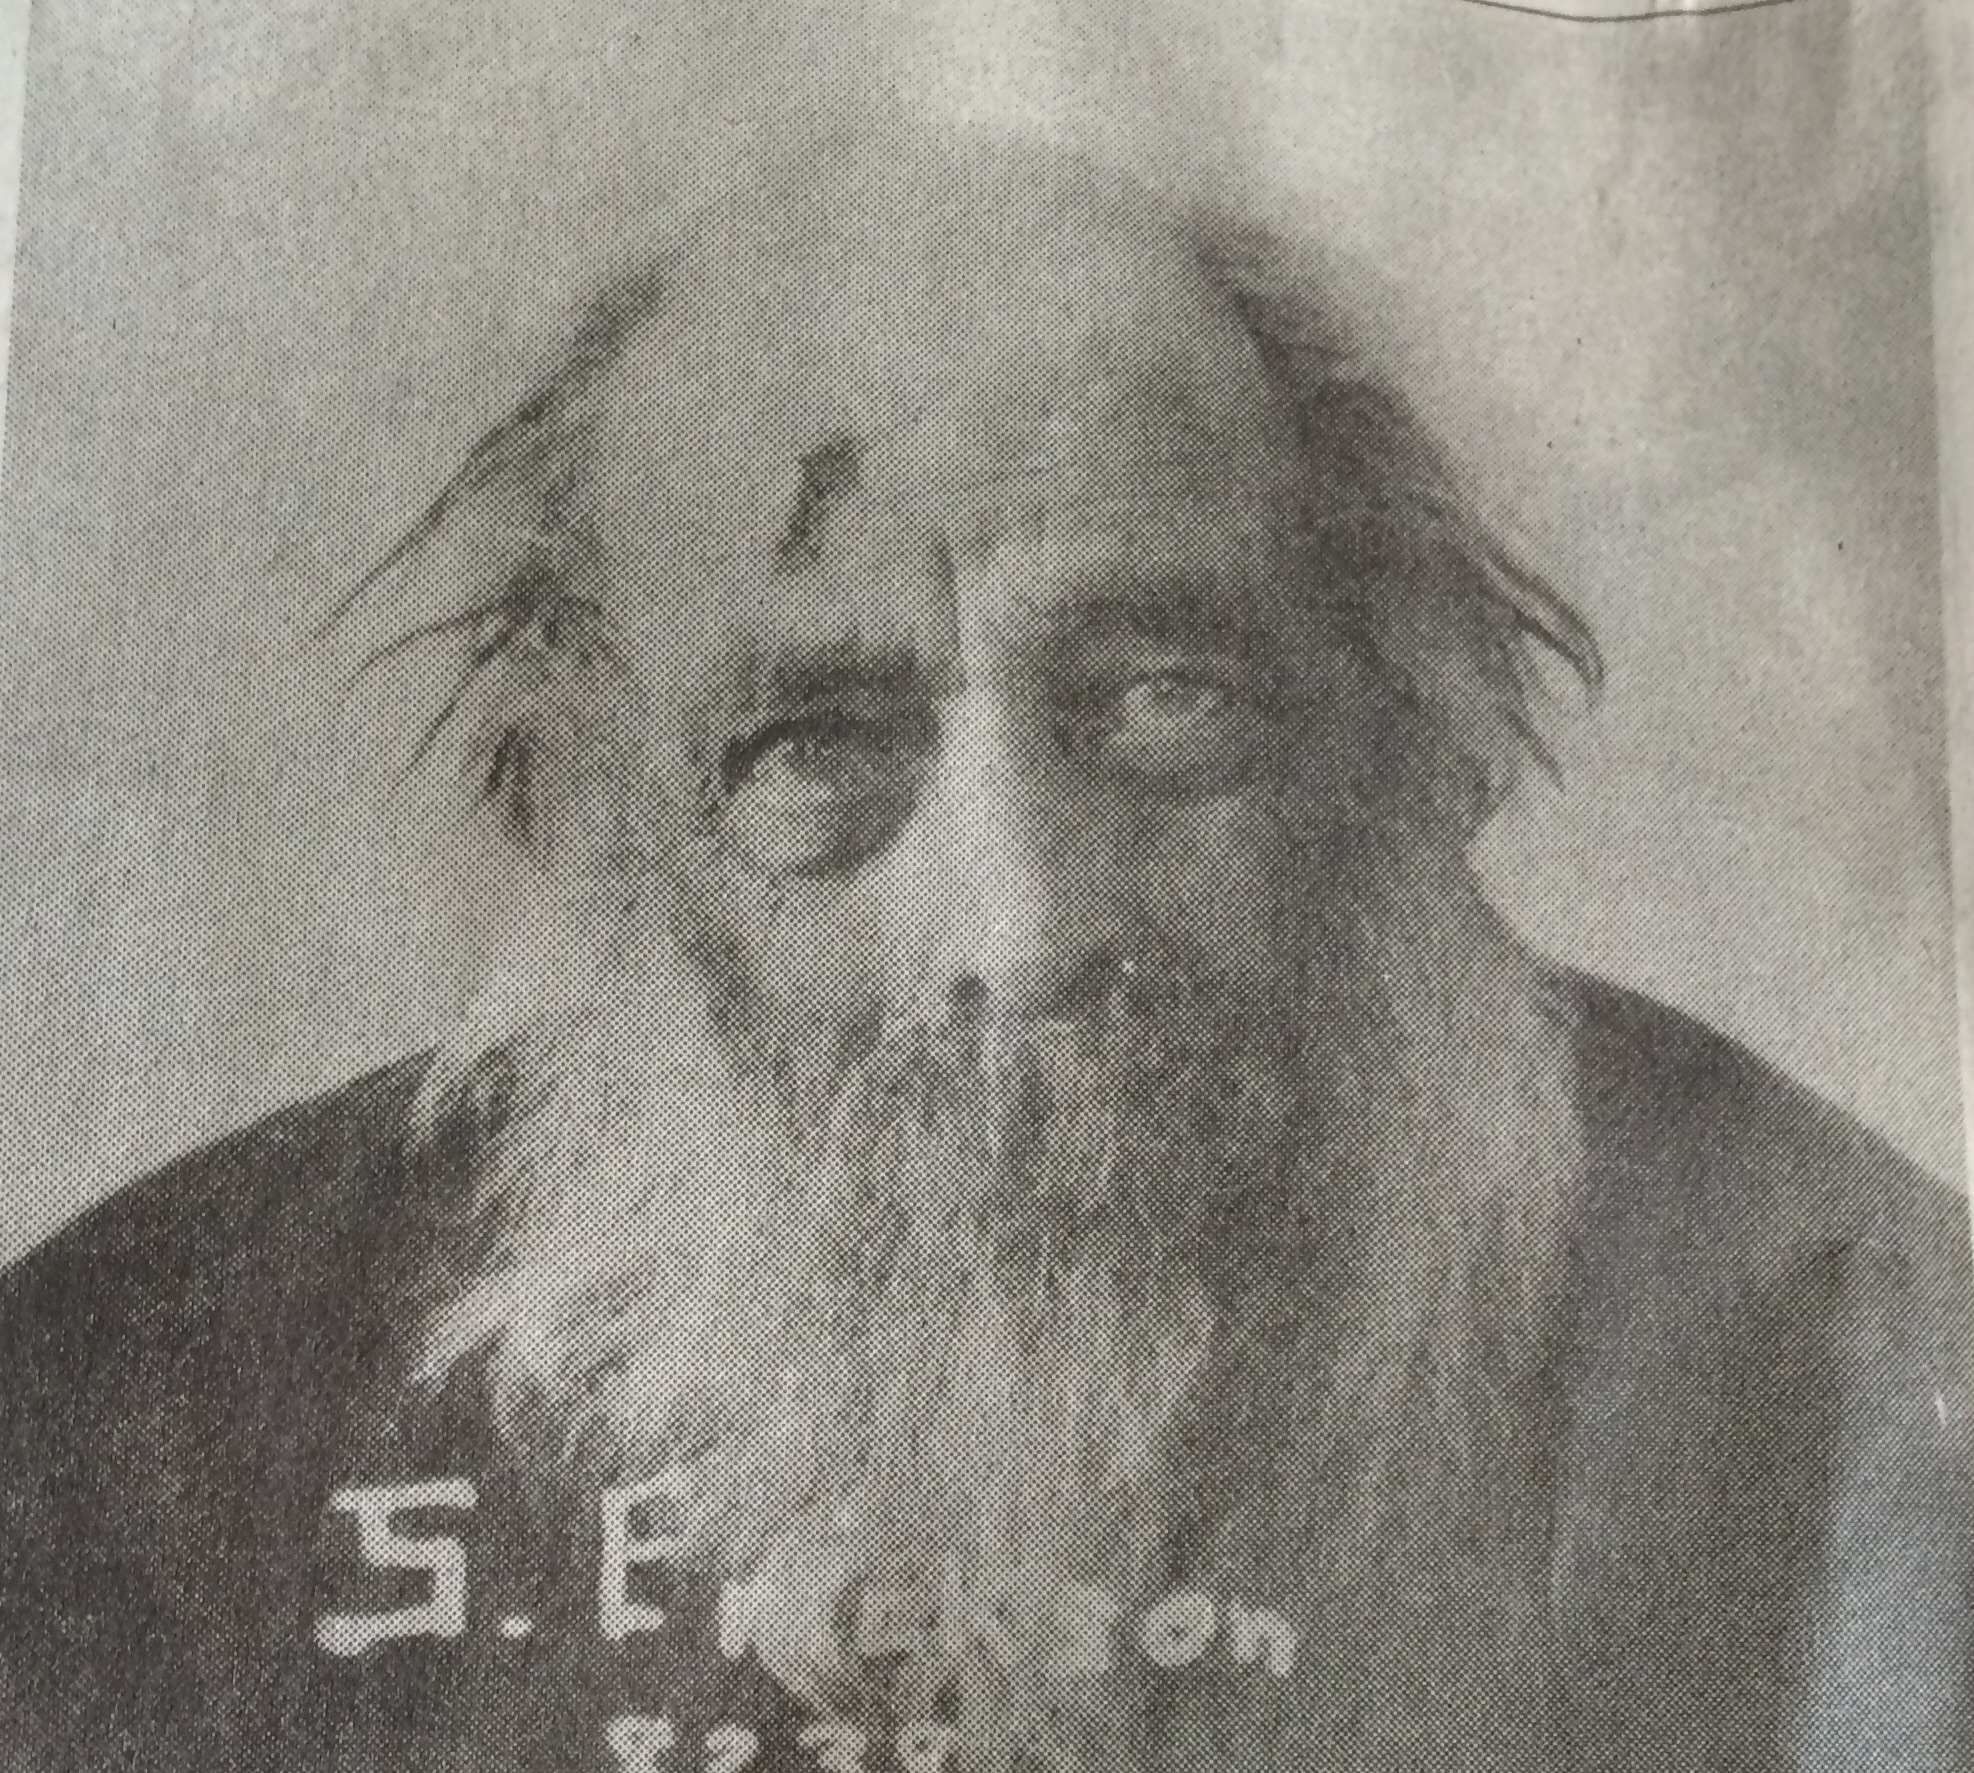 Picture from the newspaper